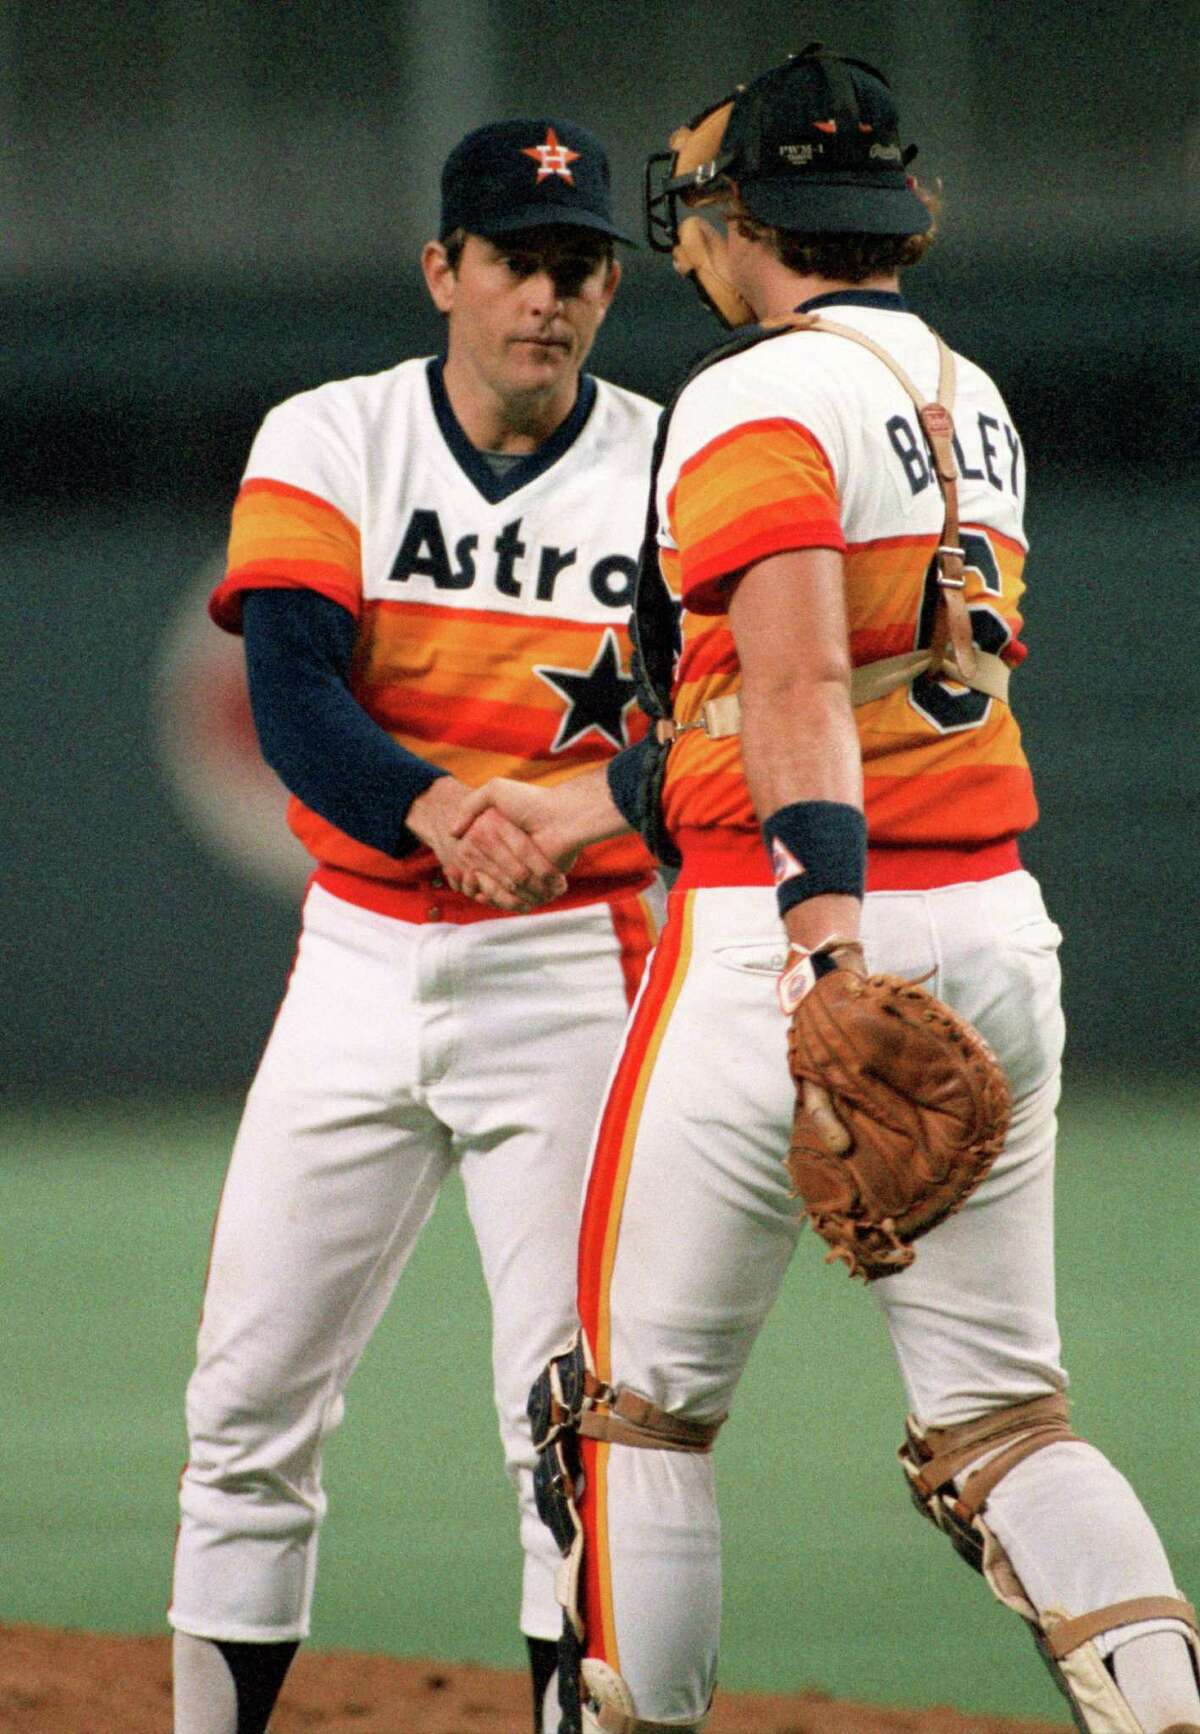 """Mike Acosta of Astros Authentics admits that he was a huge fan of Astros pitcher Nolan Ryan, right, while growing up. """"My world revolved around him."""""""